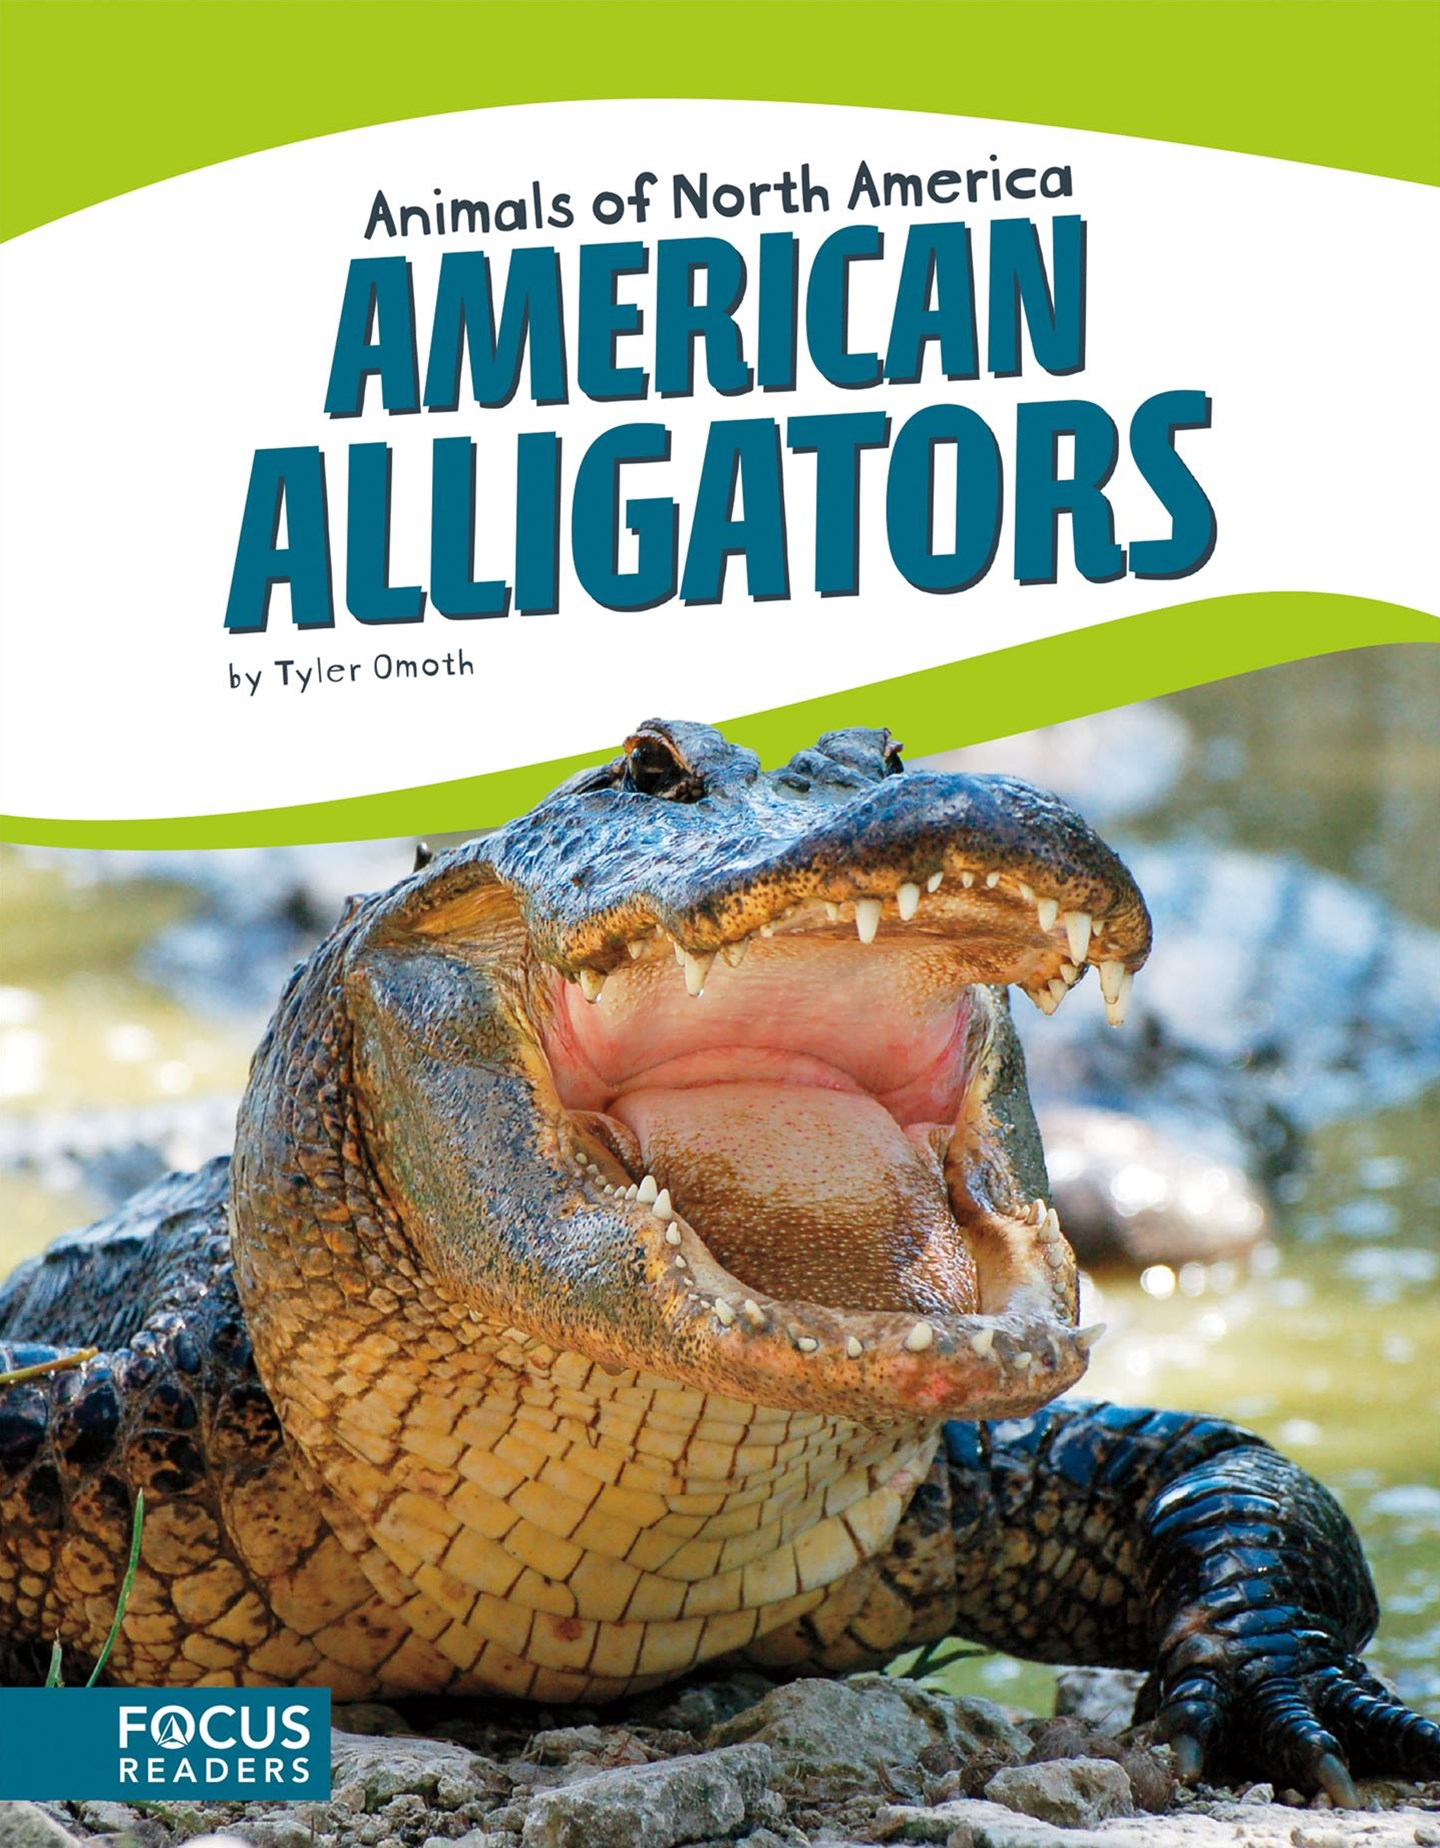 Animals of North America: American Alligators